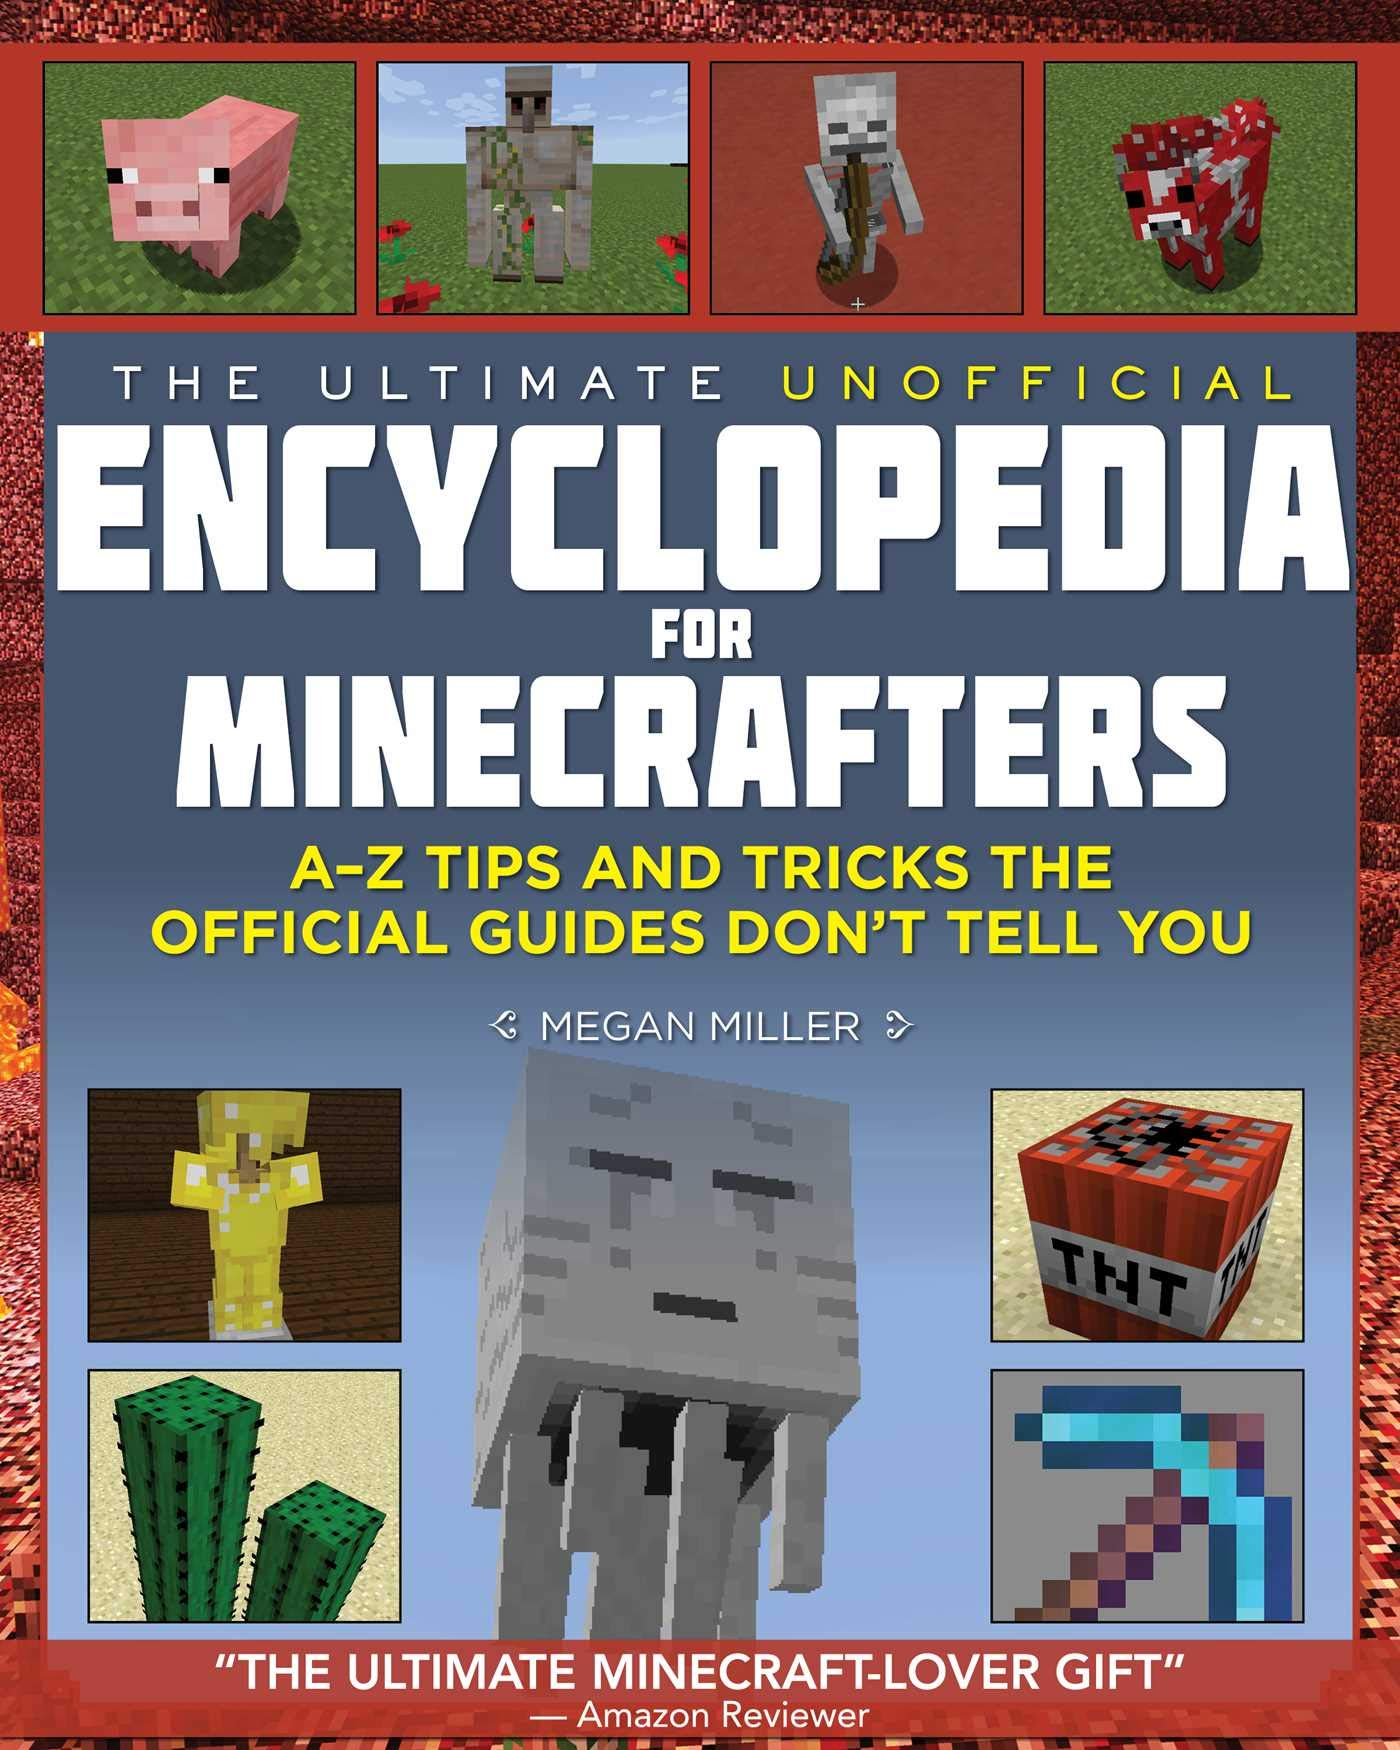 The book cover of The Ultimate Unofficial Encyclopedia for Minecrafters, which promises plenty of cool secrets.